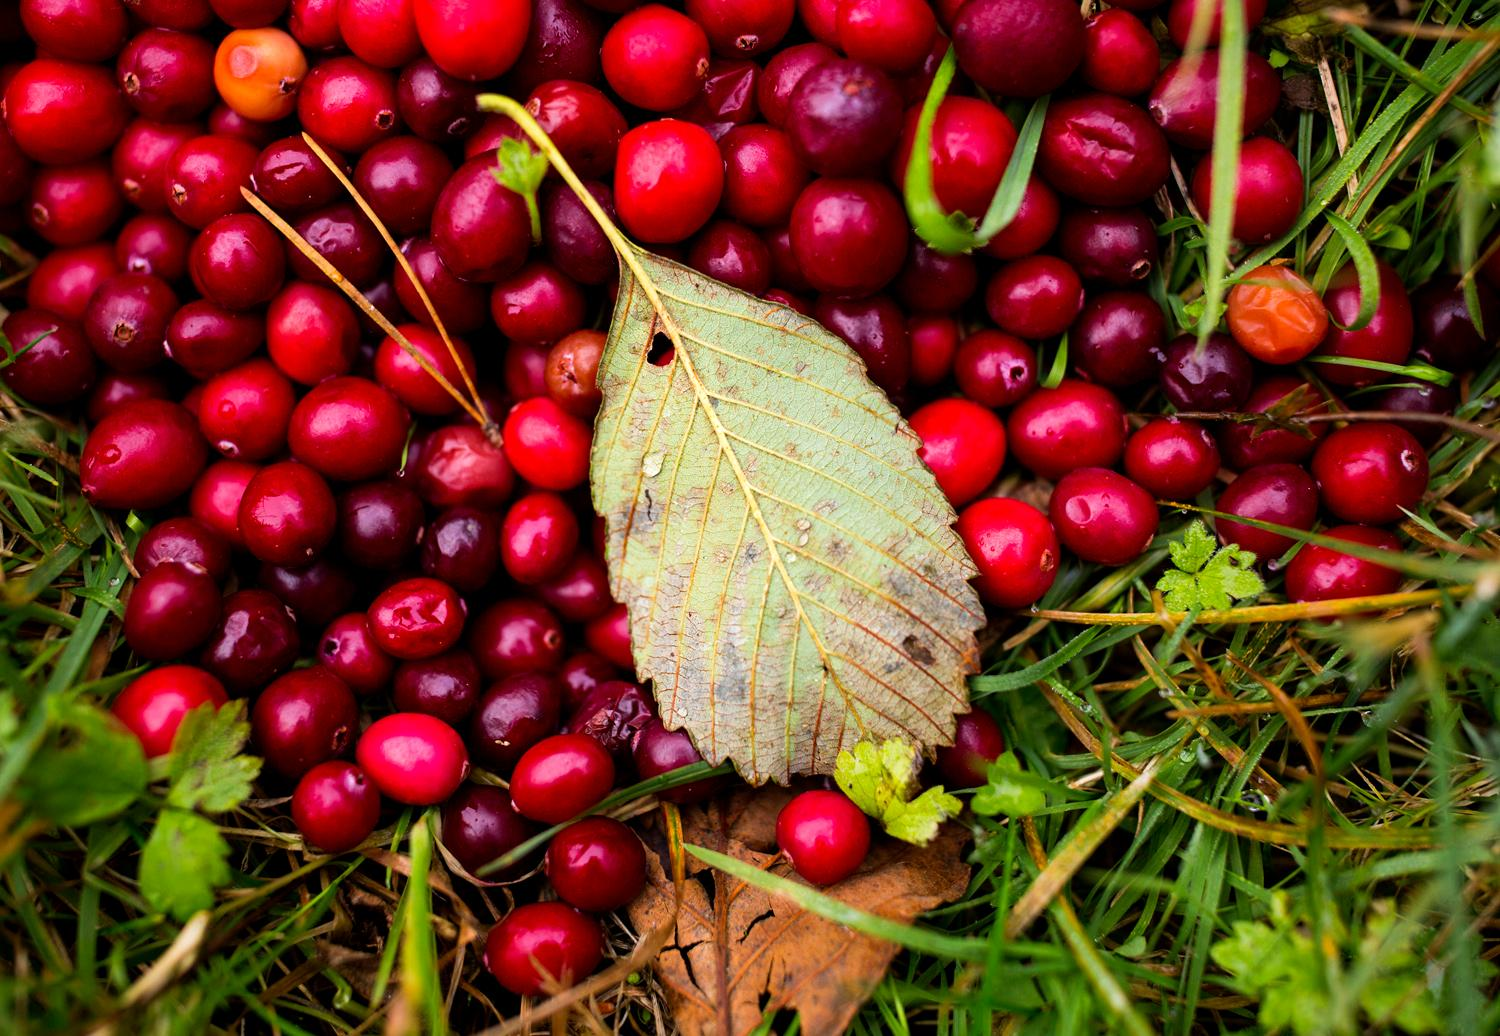 Leftover cranberries are scattered along the ground at Starvation Alley Farms. (Sy Bean / Seattle Refined)